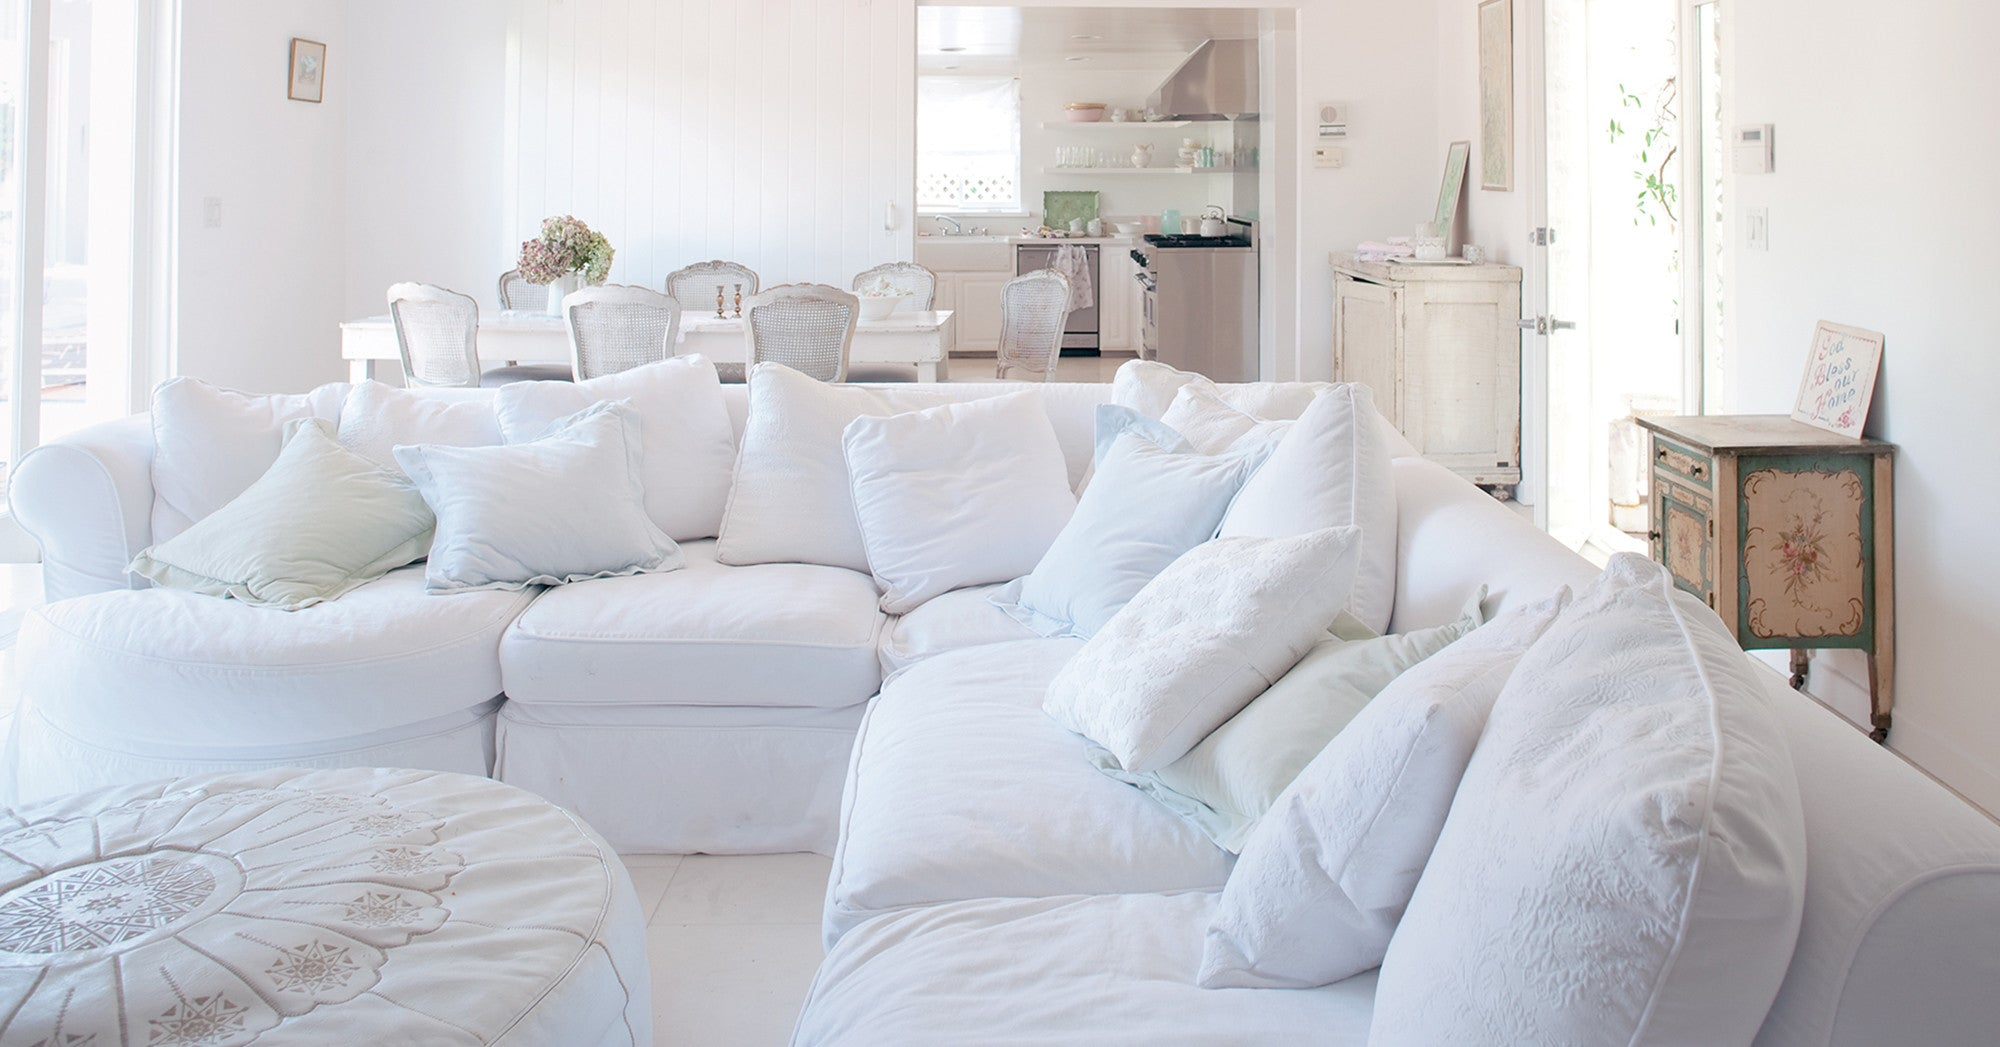 Shabby Chic Decor finds await you in this inspiring lineup of interior design inspiration. #shabbychic #interiordesignideas #decoratingideas #rachelashwell #sectional #livingroom #slipcovered